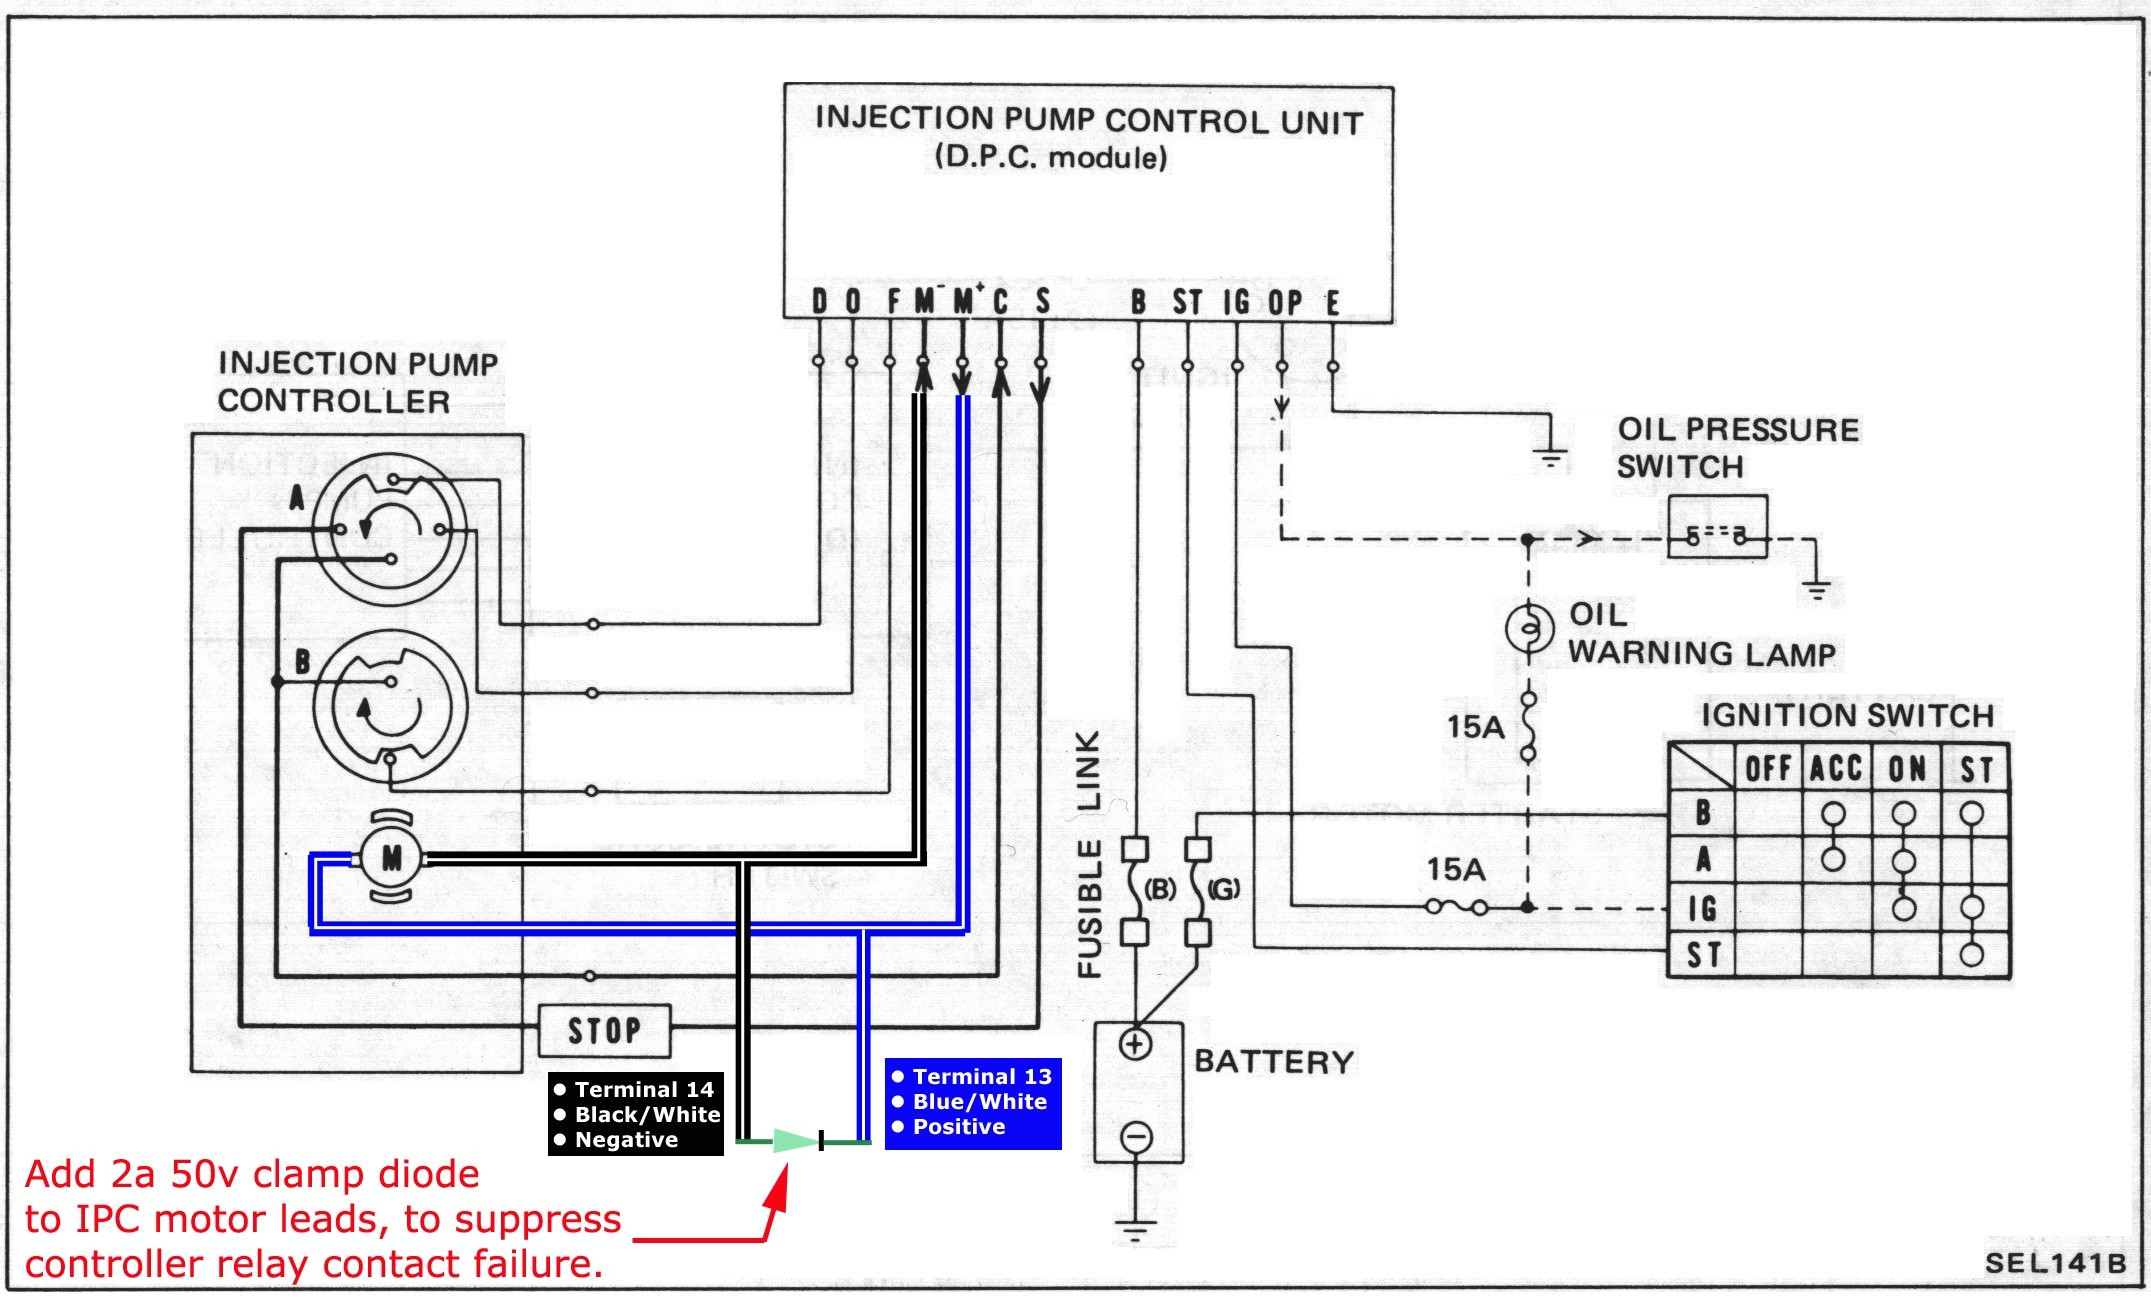 1996 Nissan Altima Engine Diagram My Wiring DIagram